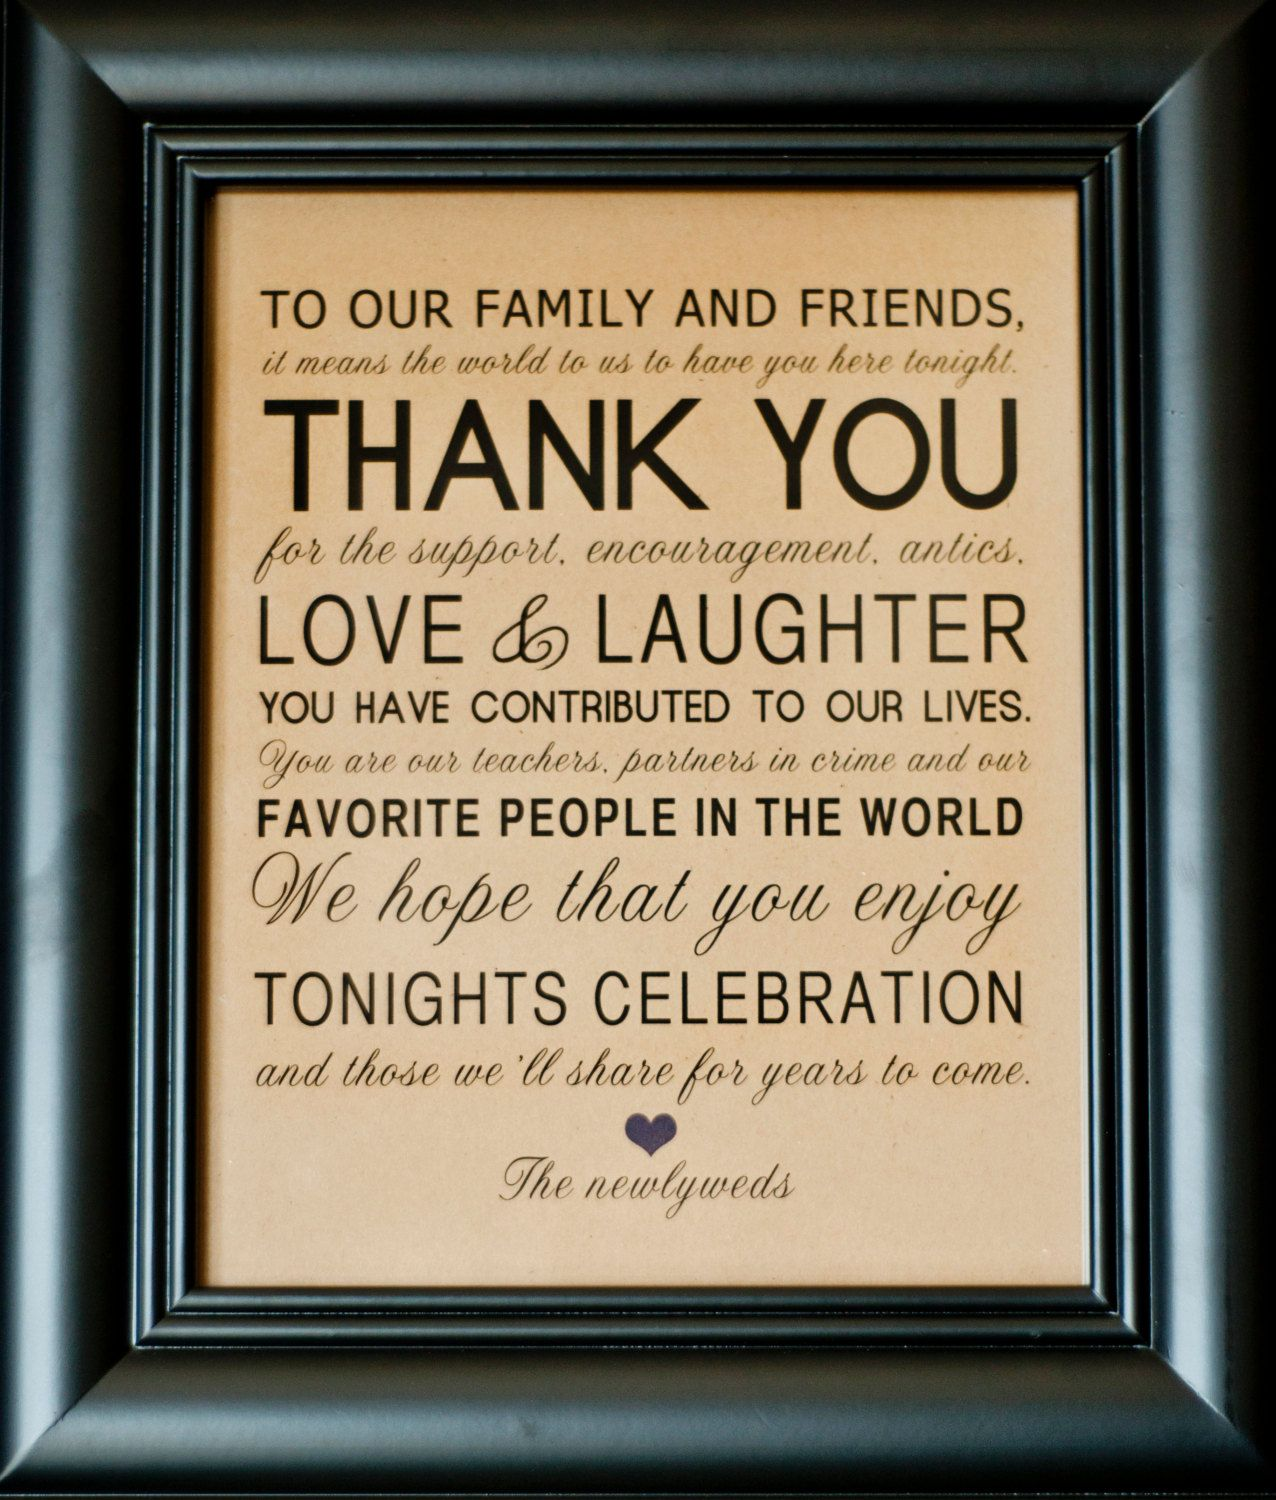 Thank You Wedding Reception Sign For Family And Friends 8 X 10 Printed